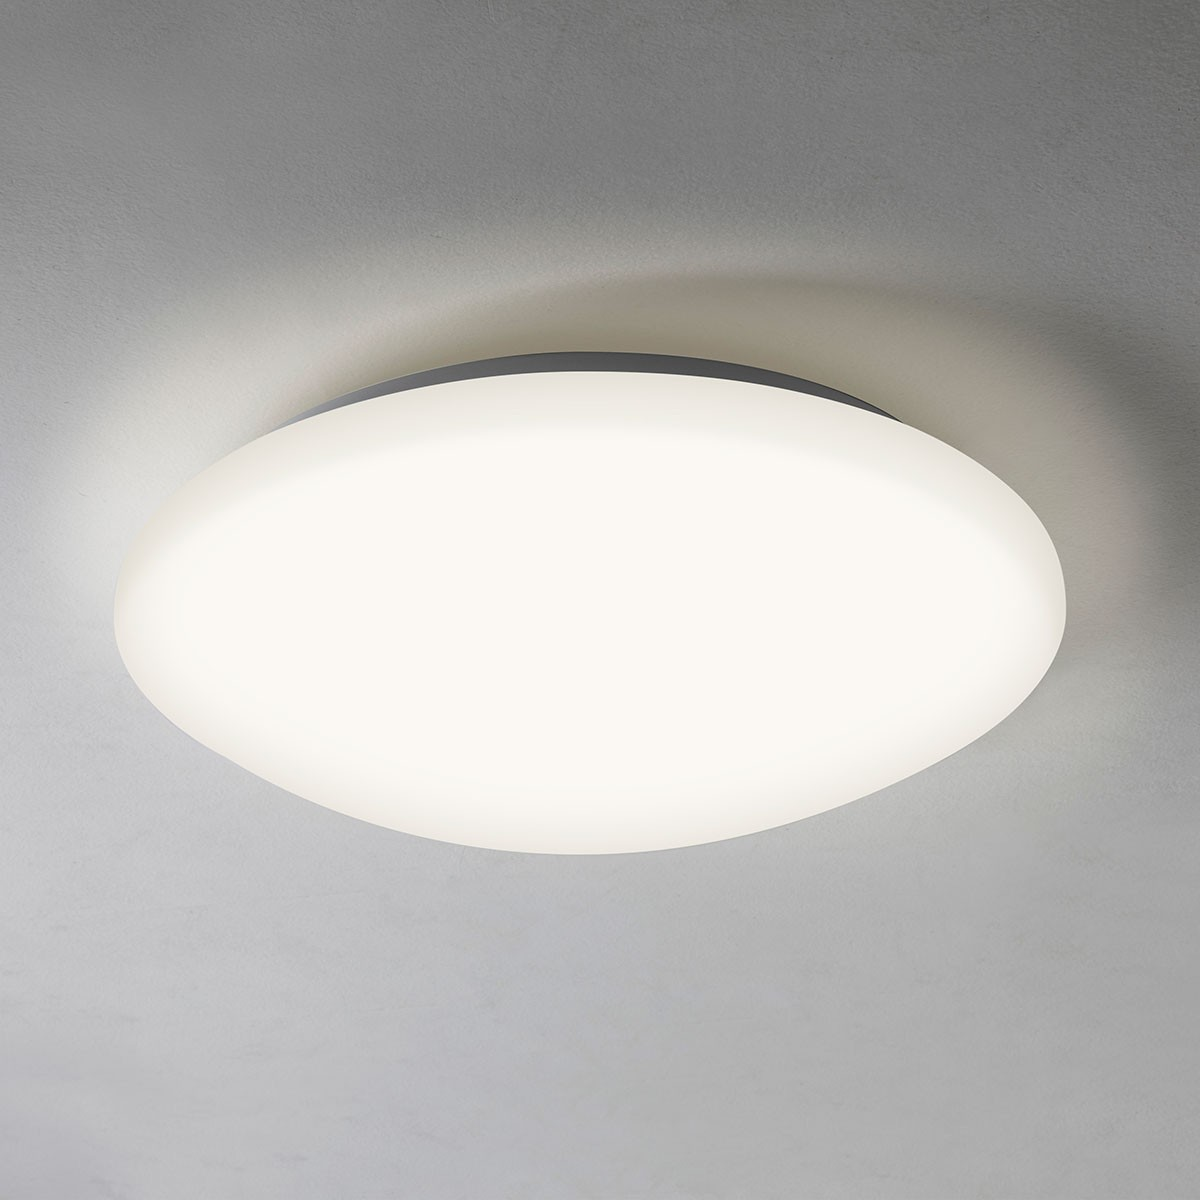 Astro Massa 300 White Ceiling Light At UK Electrical Supplies